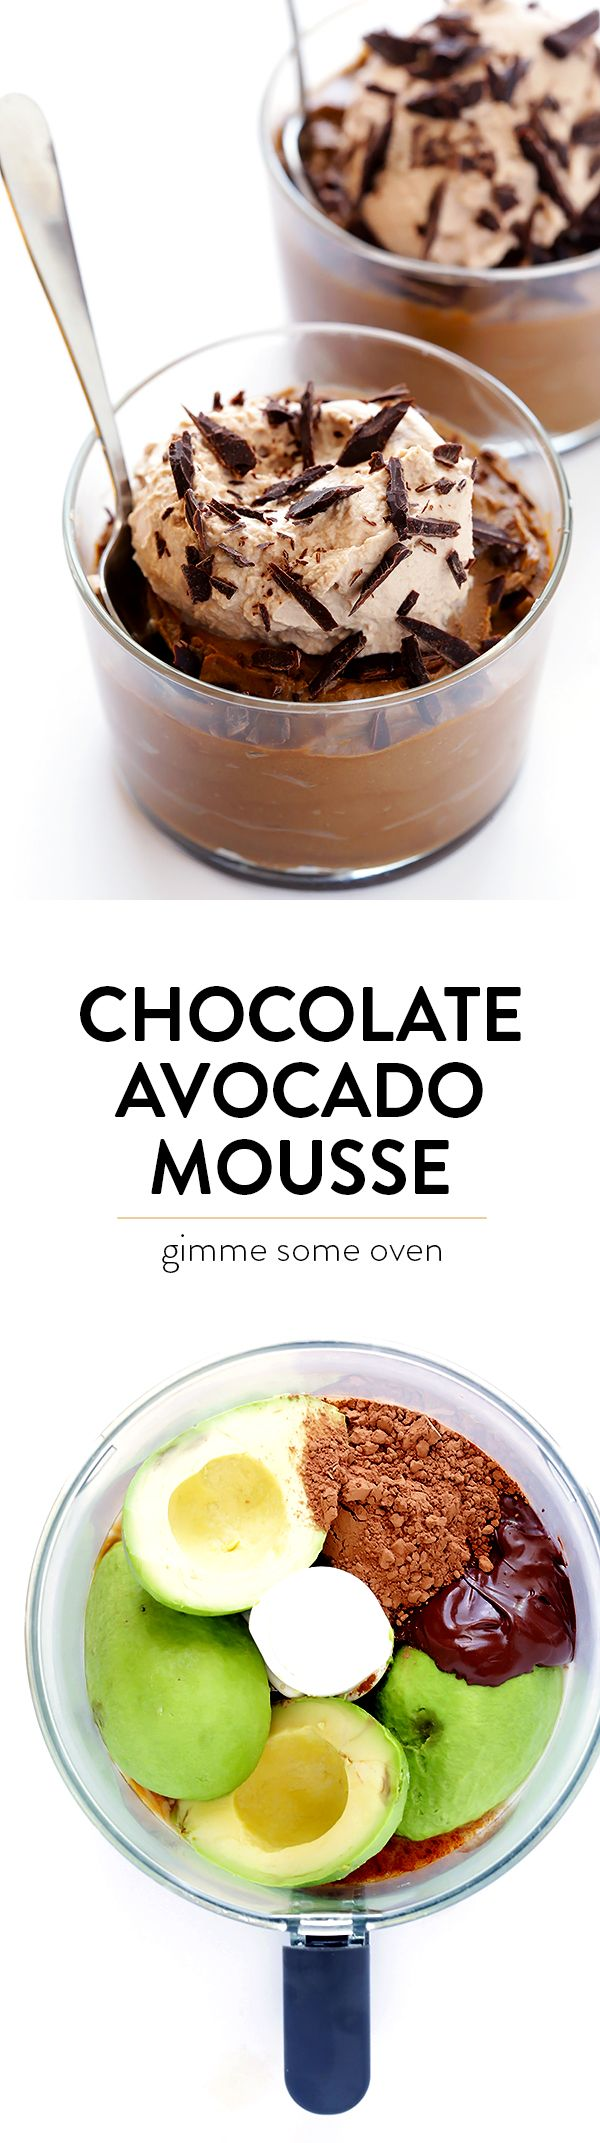 Dark Chocolate Avocado Mousse - super easy to make in the blender or food processor, it's made with healthier ingredients, and it tastes SO decadent and delicious! | gimmesomeoven.com